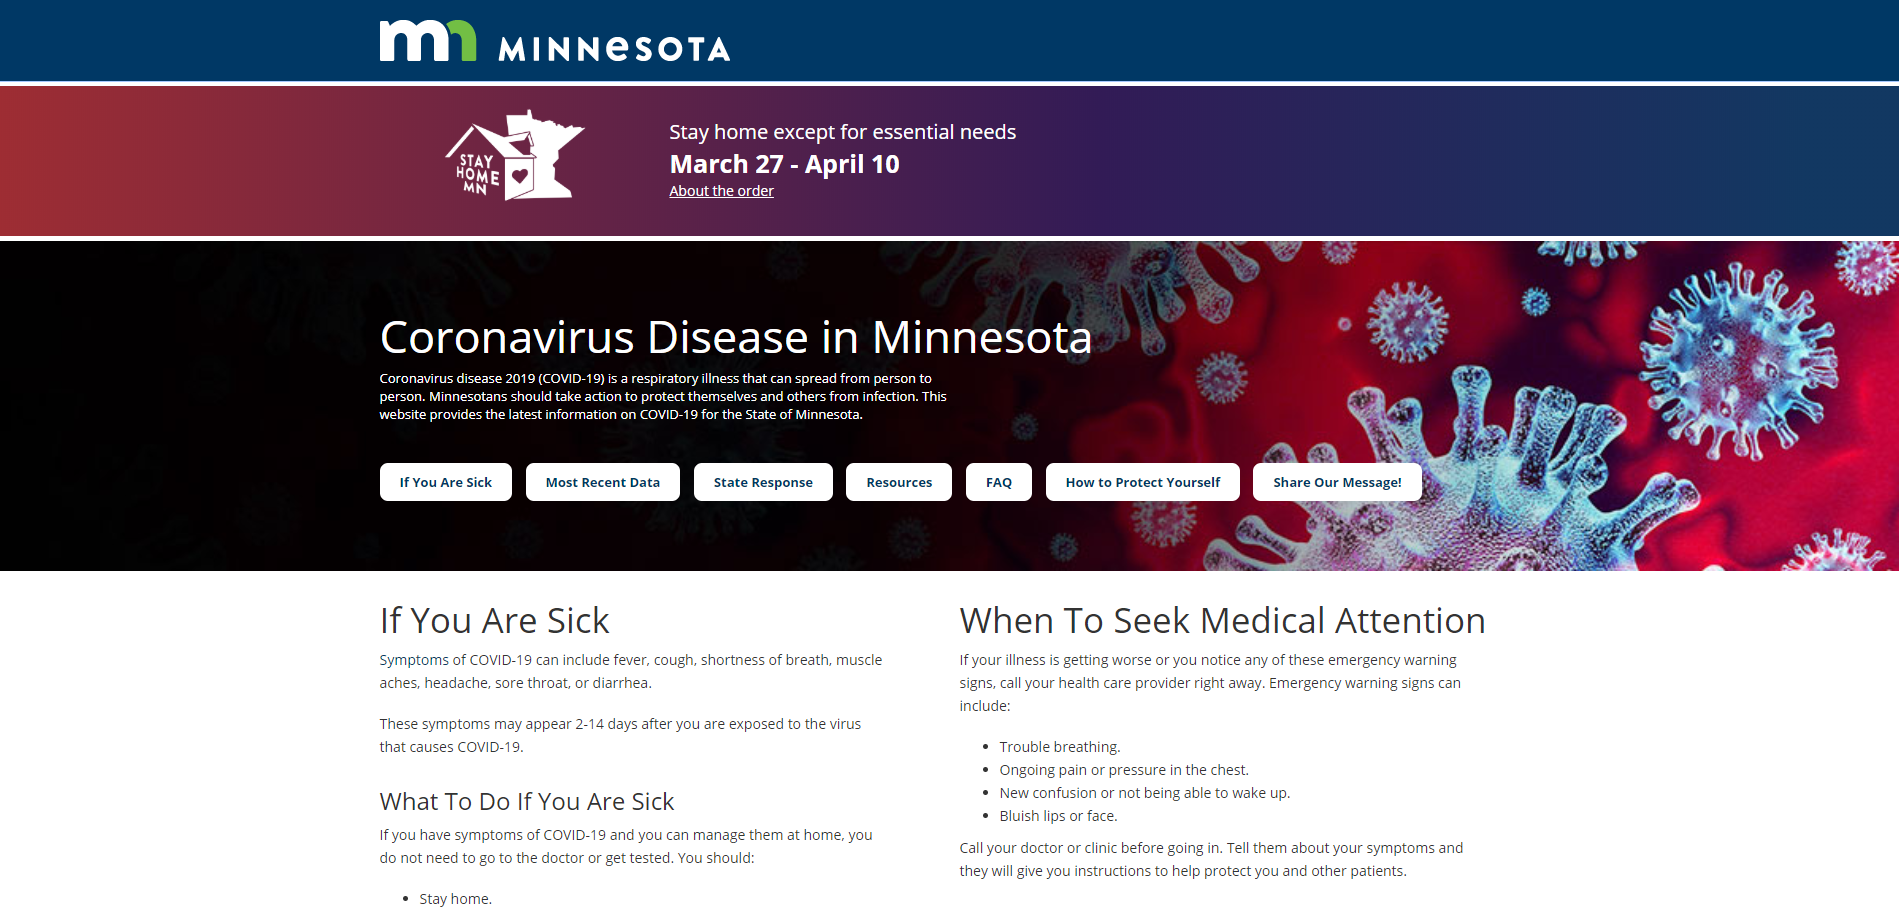 Minnesota Releases New COVID-19 Website For Residents